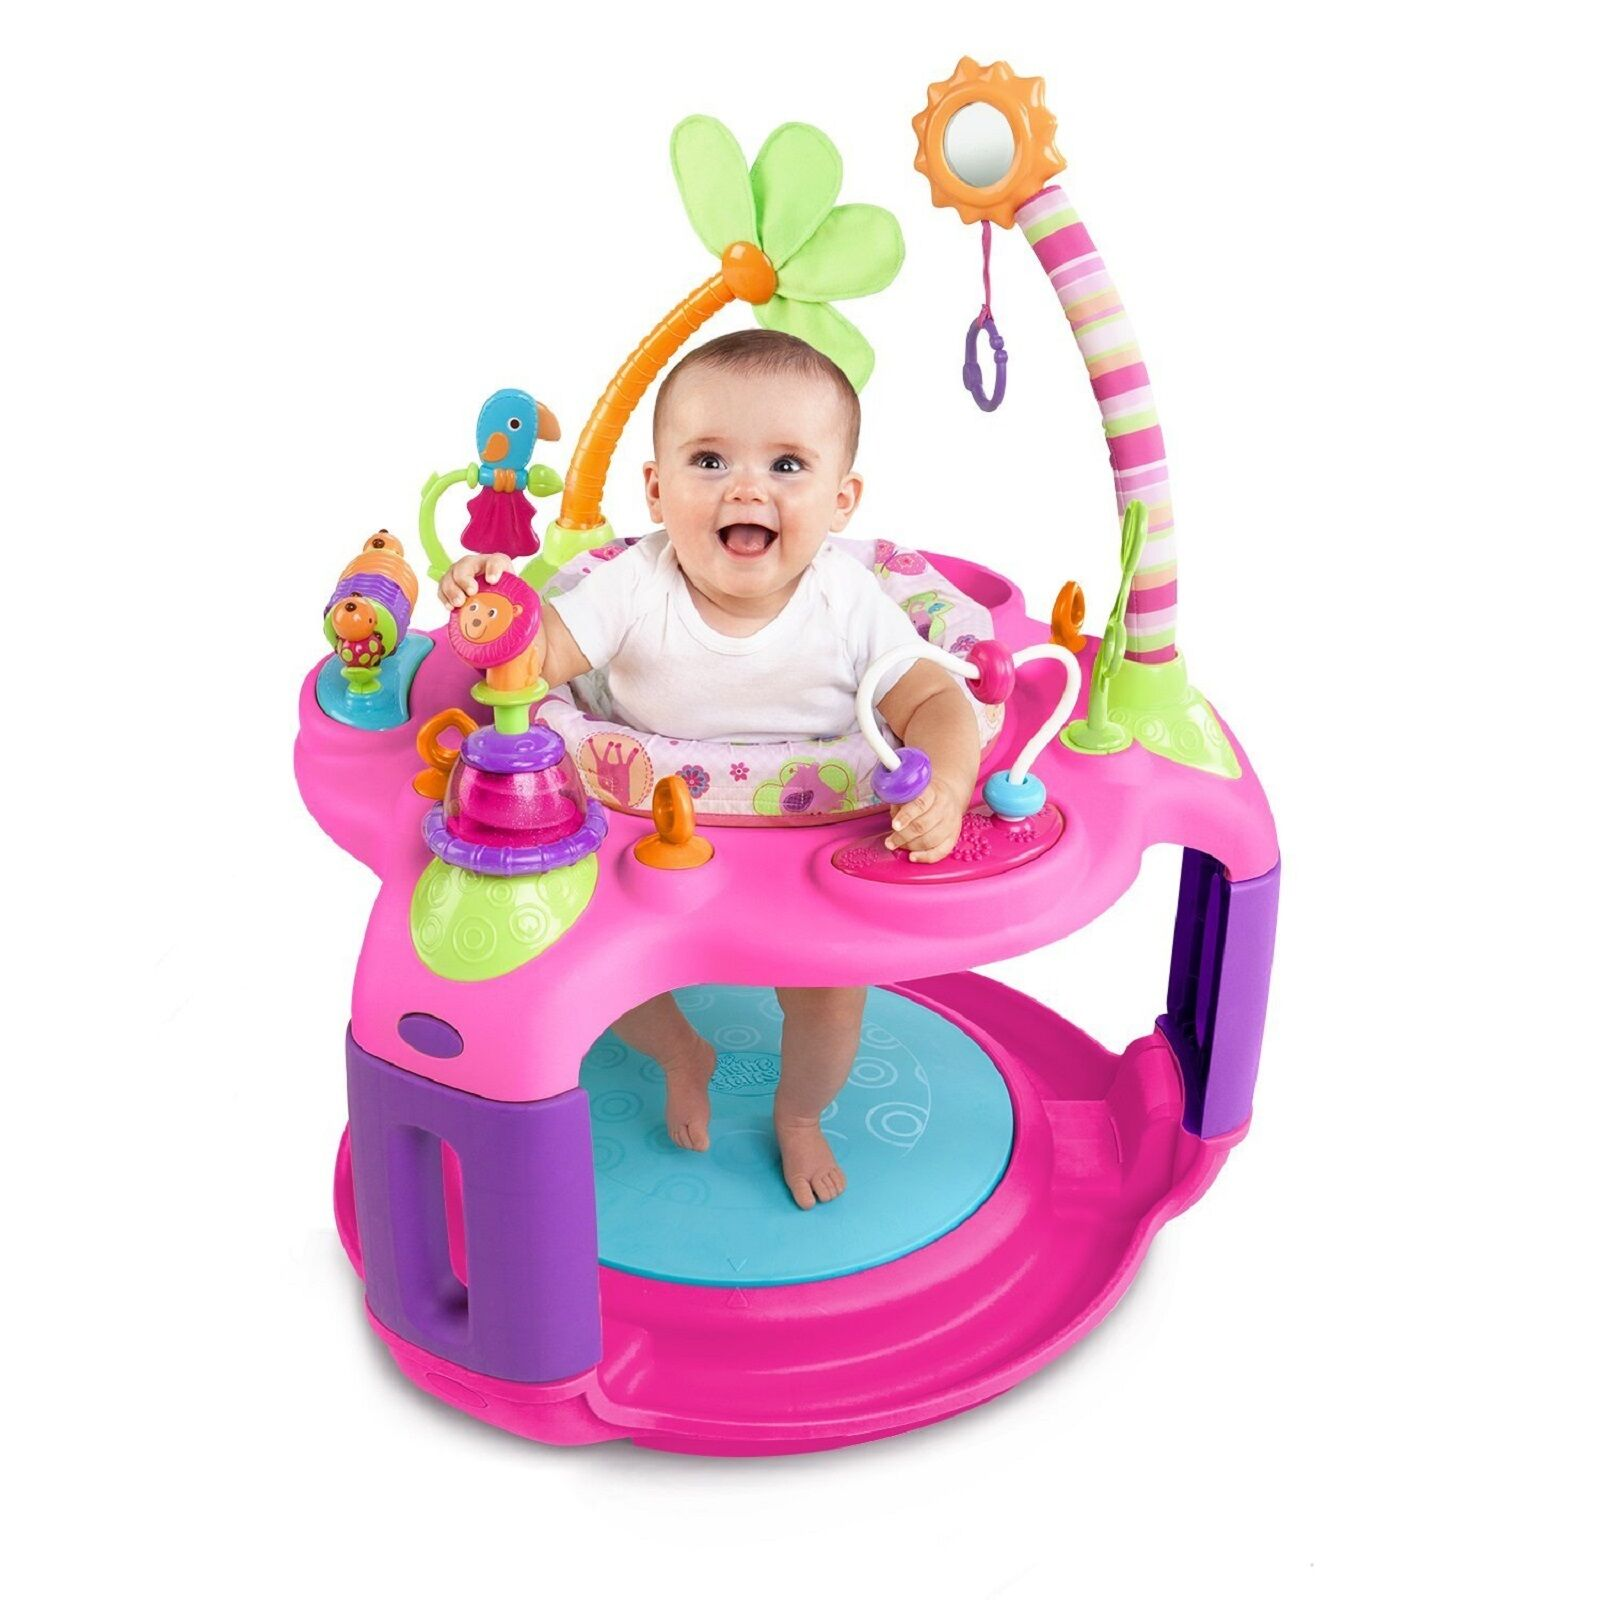 Bright Starts Bouncer Activity Center Sweet Pink Safari Baby